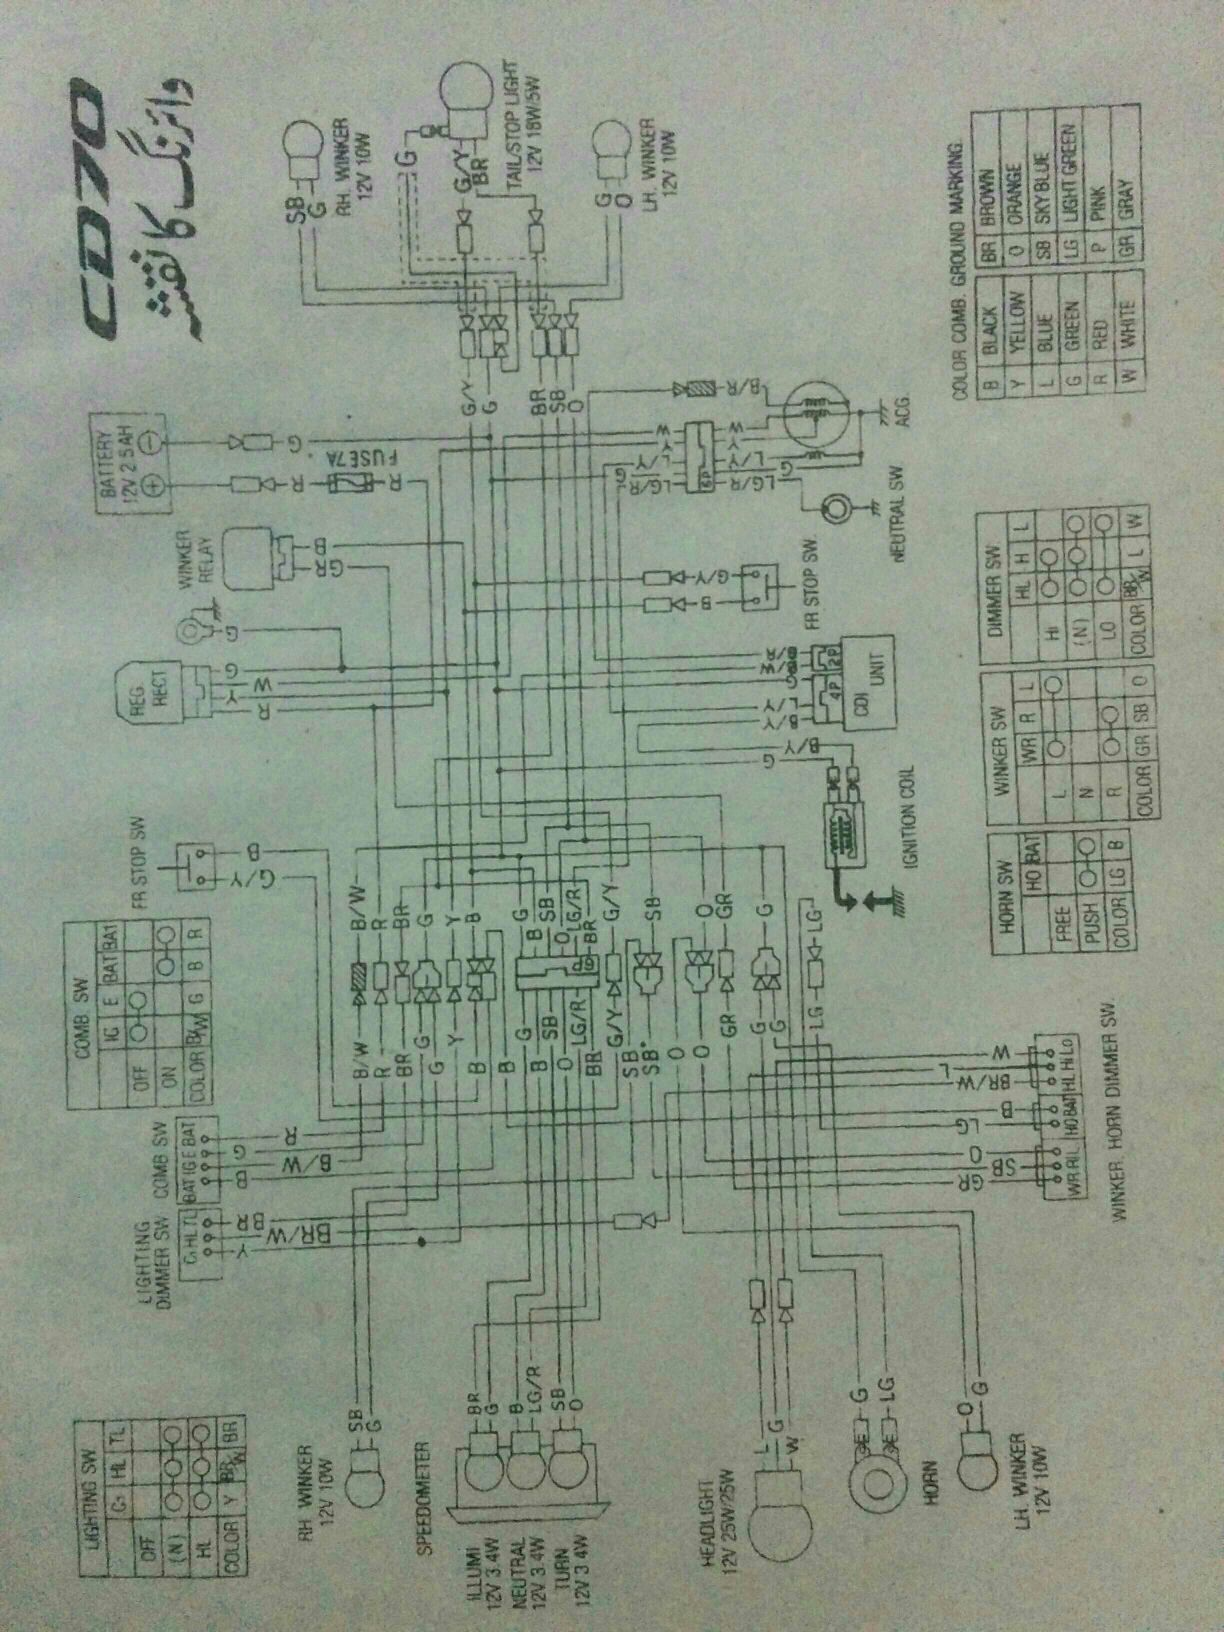 hight resolution of honda cdi 70 wiring diagram wiring diagram honda cd 70 wiring diagram pdf honda cdi 70 wiring diagram